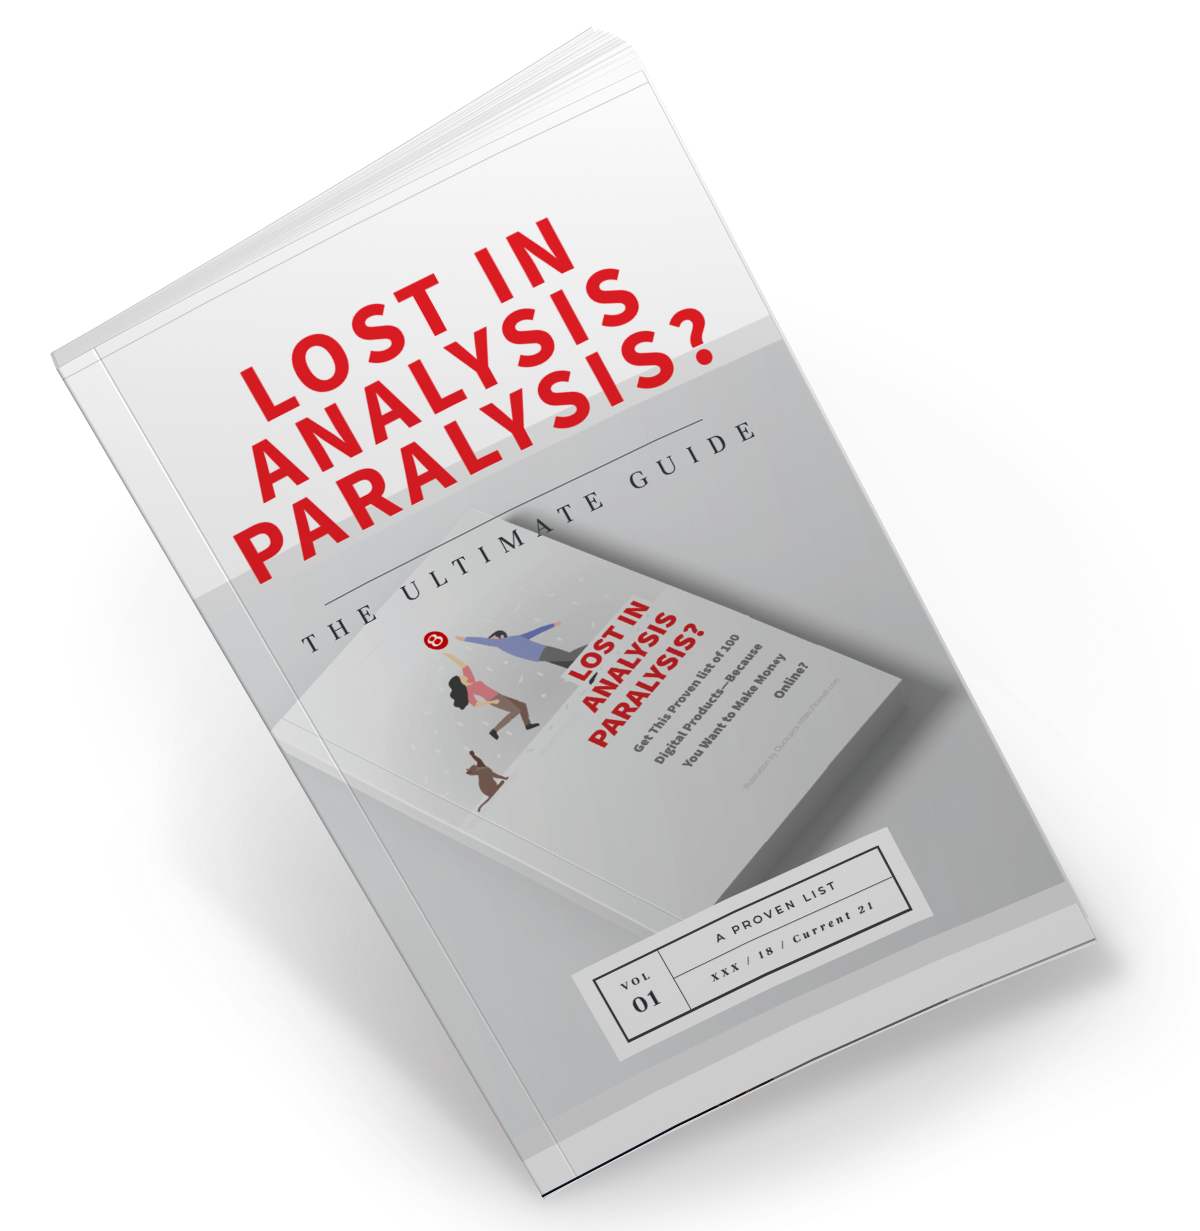 Are You Lost in Analysis Paralysis?